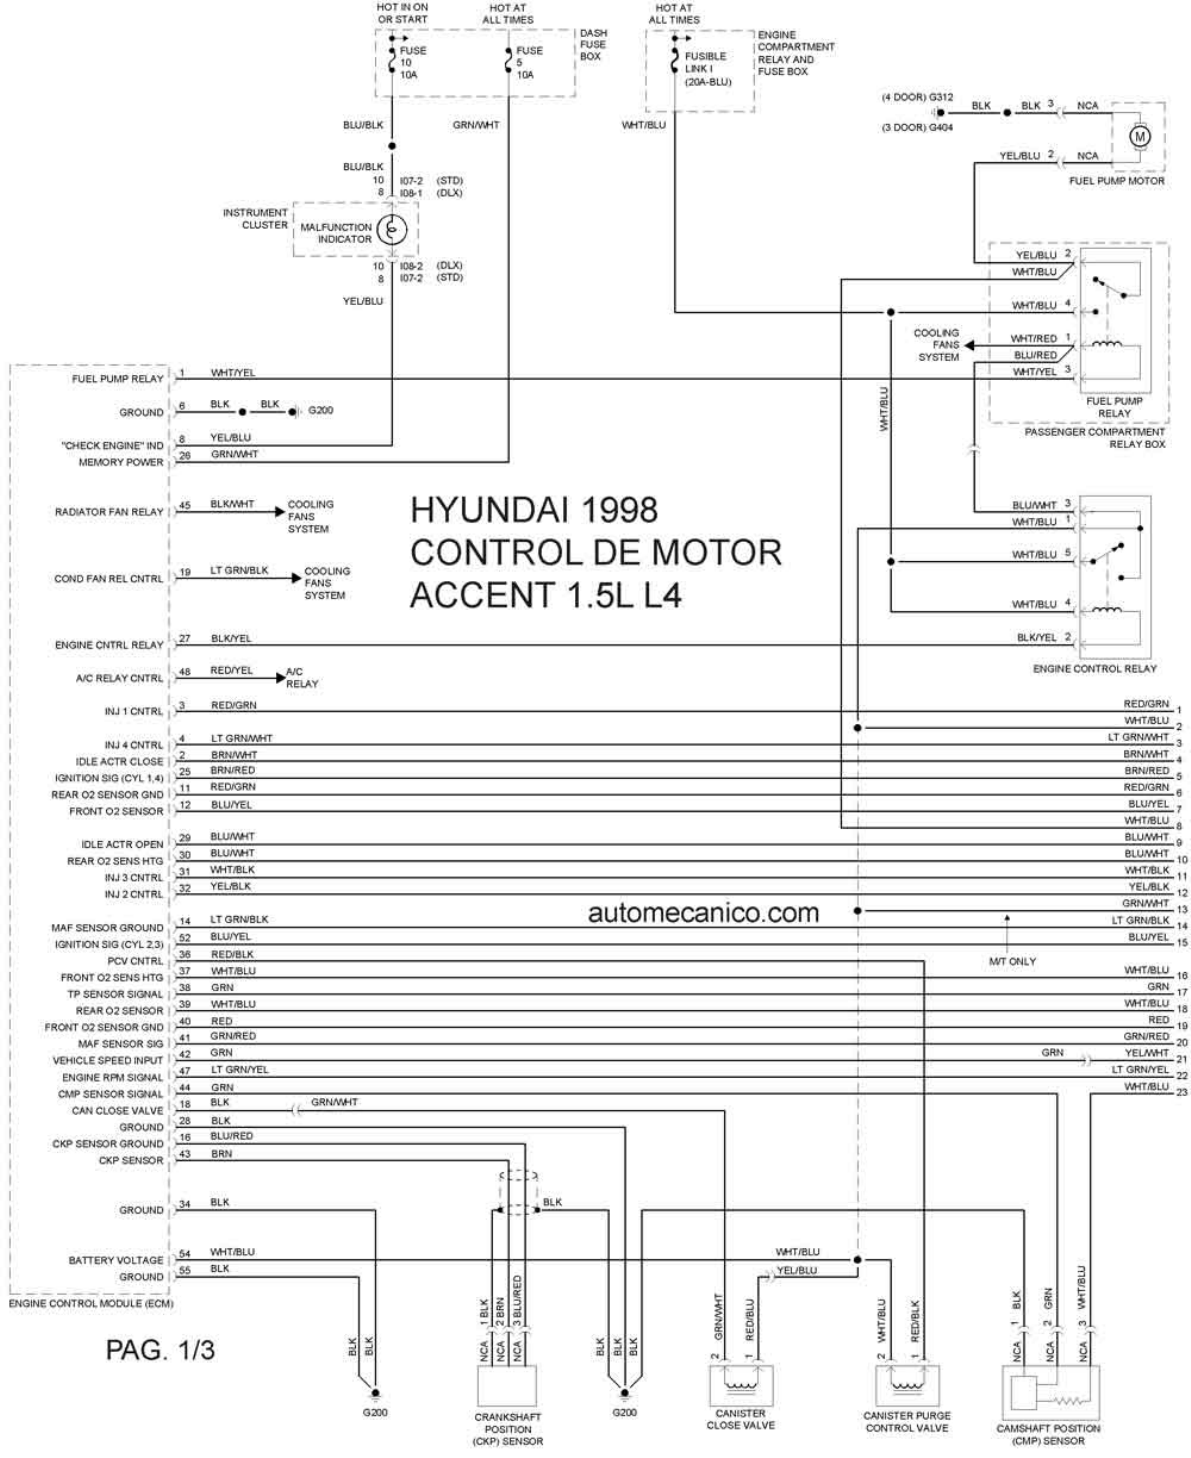 hight resolution of fuse diagram 2007 accent simple wiring diagram mercedes fuse diagram 2004 hyundai accent 1998 misc document